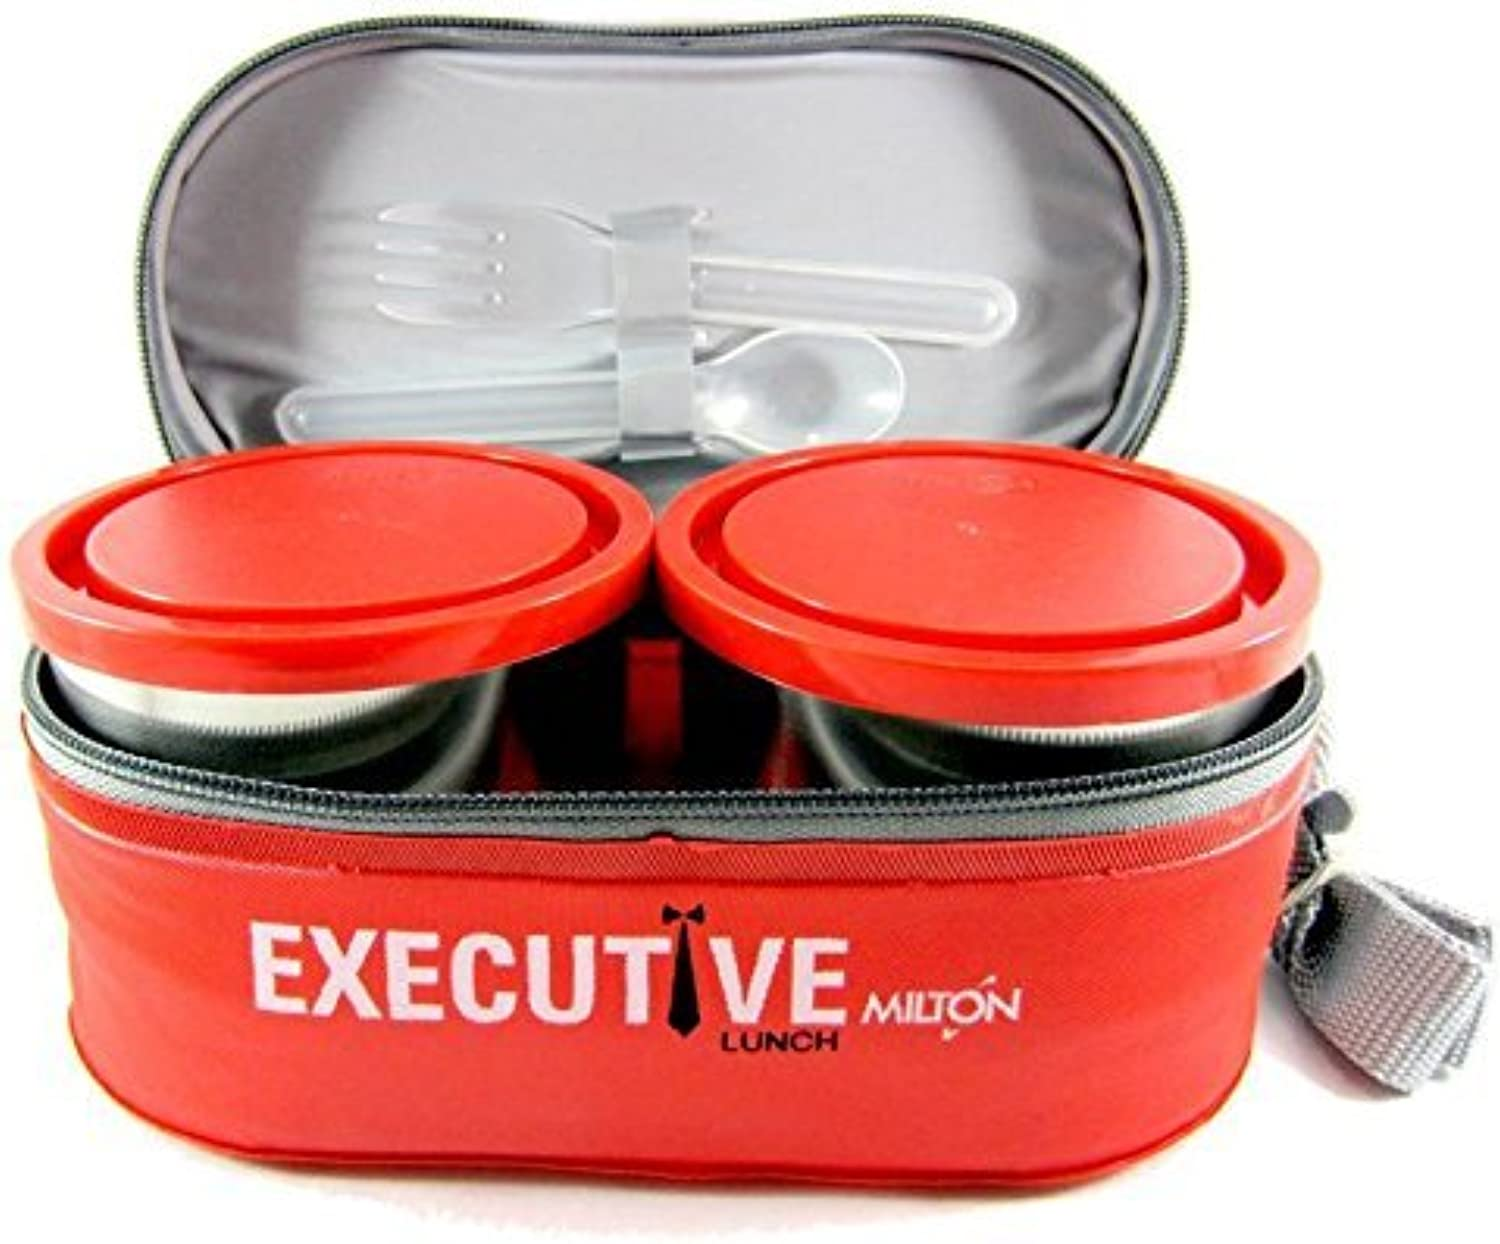 Milton Executive Series 3 Container Lunch Box